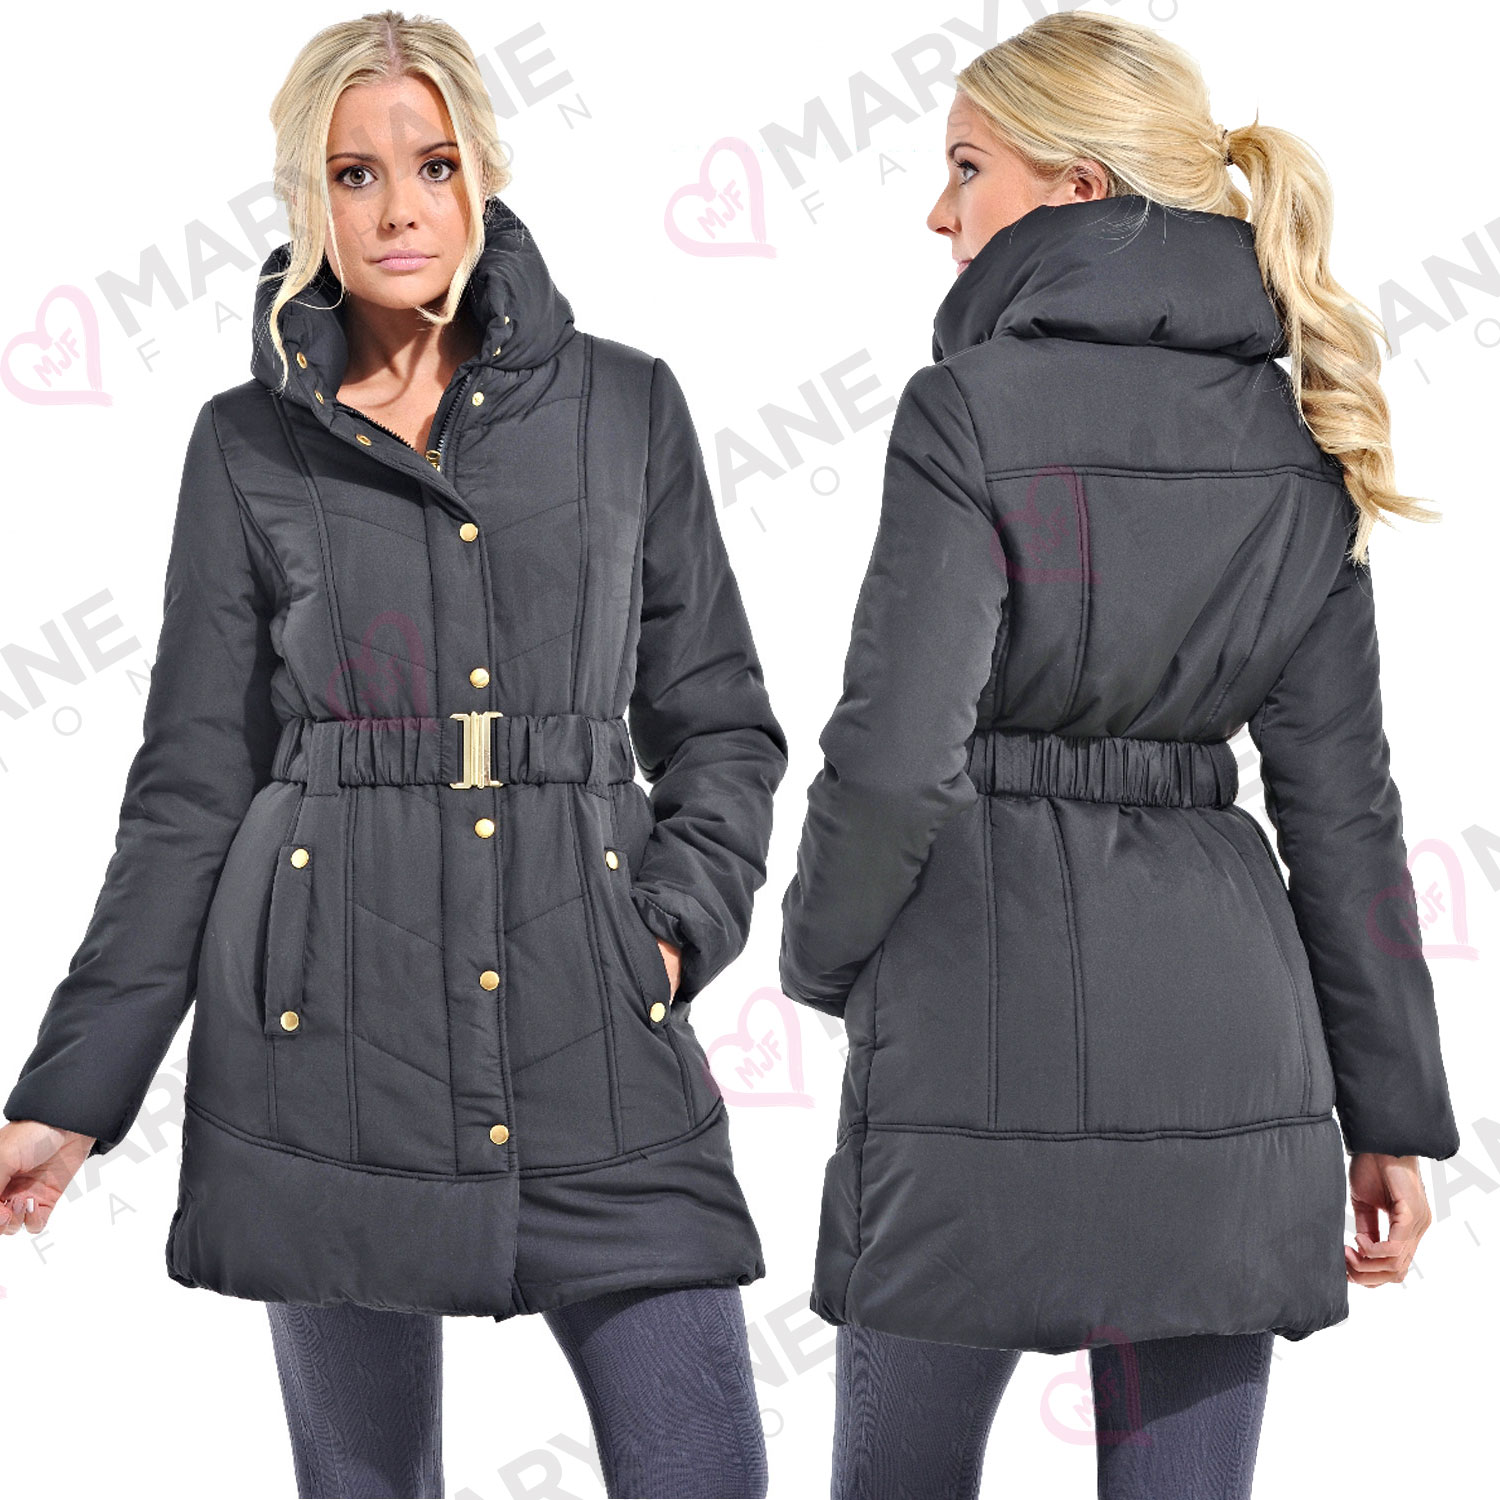 Padded Coats. Clothing. Women. Womens Coats & Jackets. Padded Coats. Showing 48 of results that match your query. Search Product Result. Product - Women Padded Blazer Jacket Long Sleeve Cardigan Zip Up Tops Outwear Biker Coat Motorcycle Overcoat Plus Size. Product Image. Price $